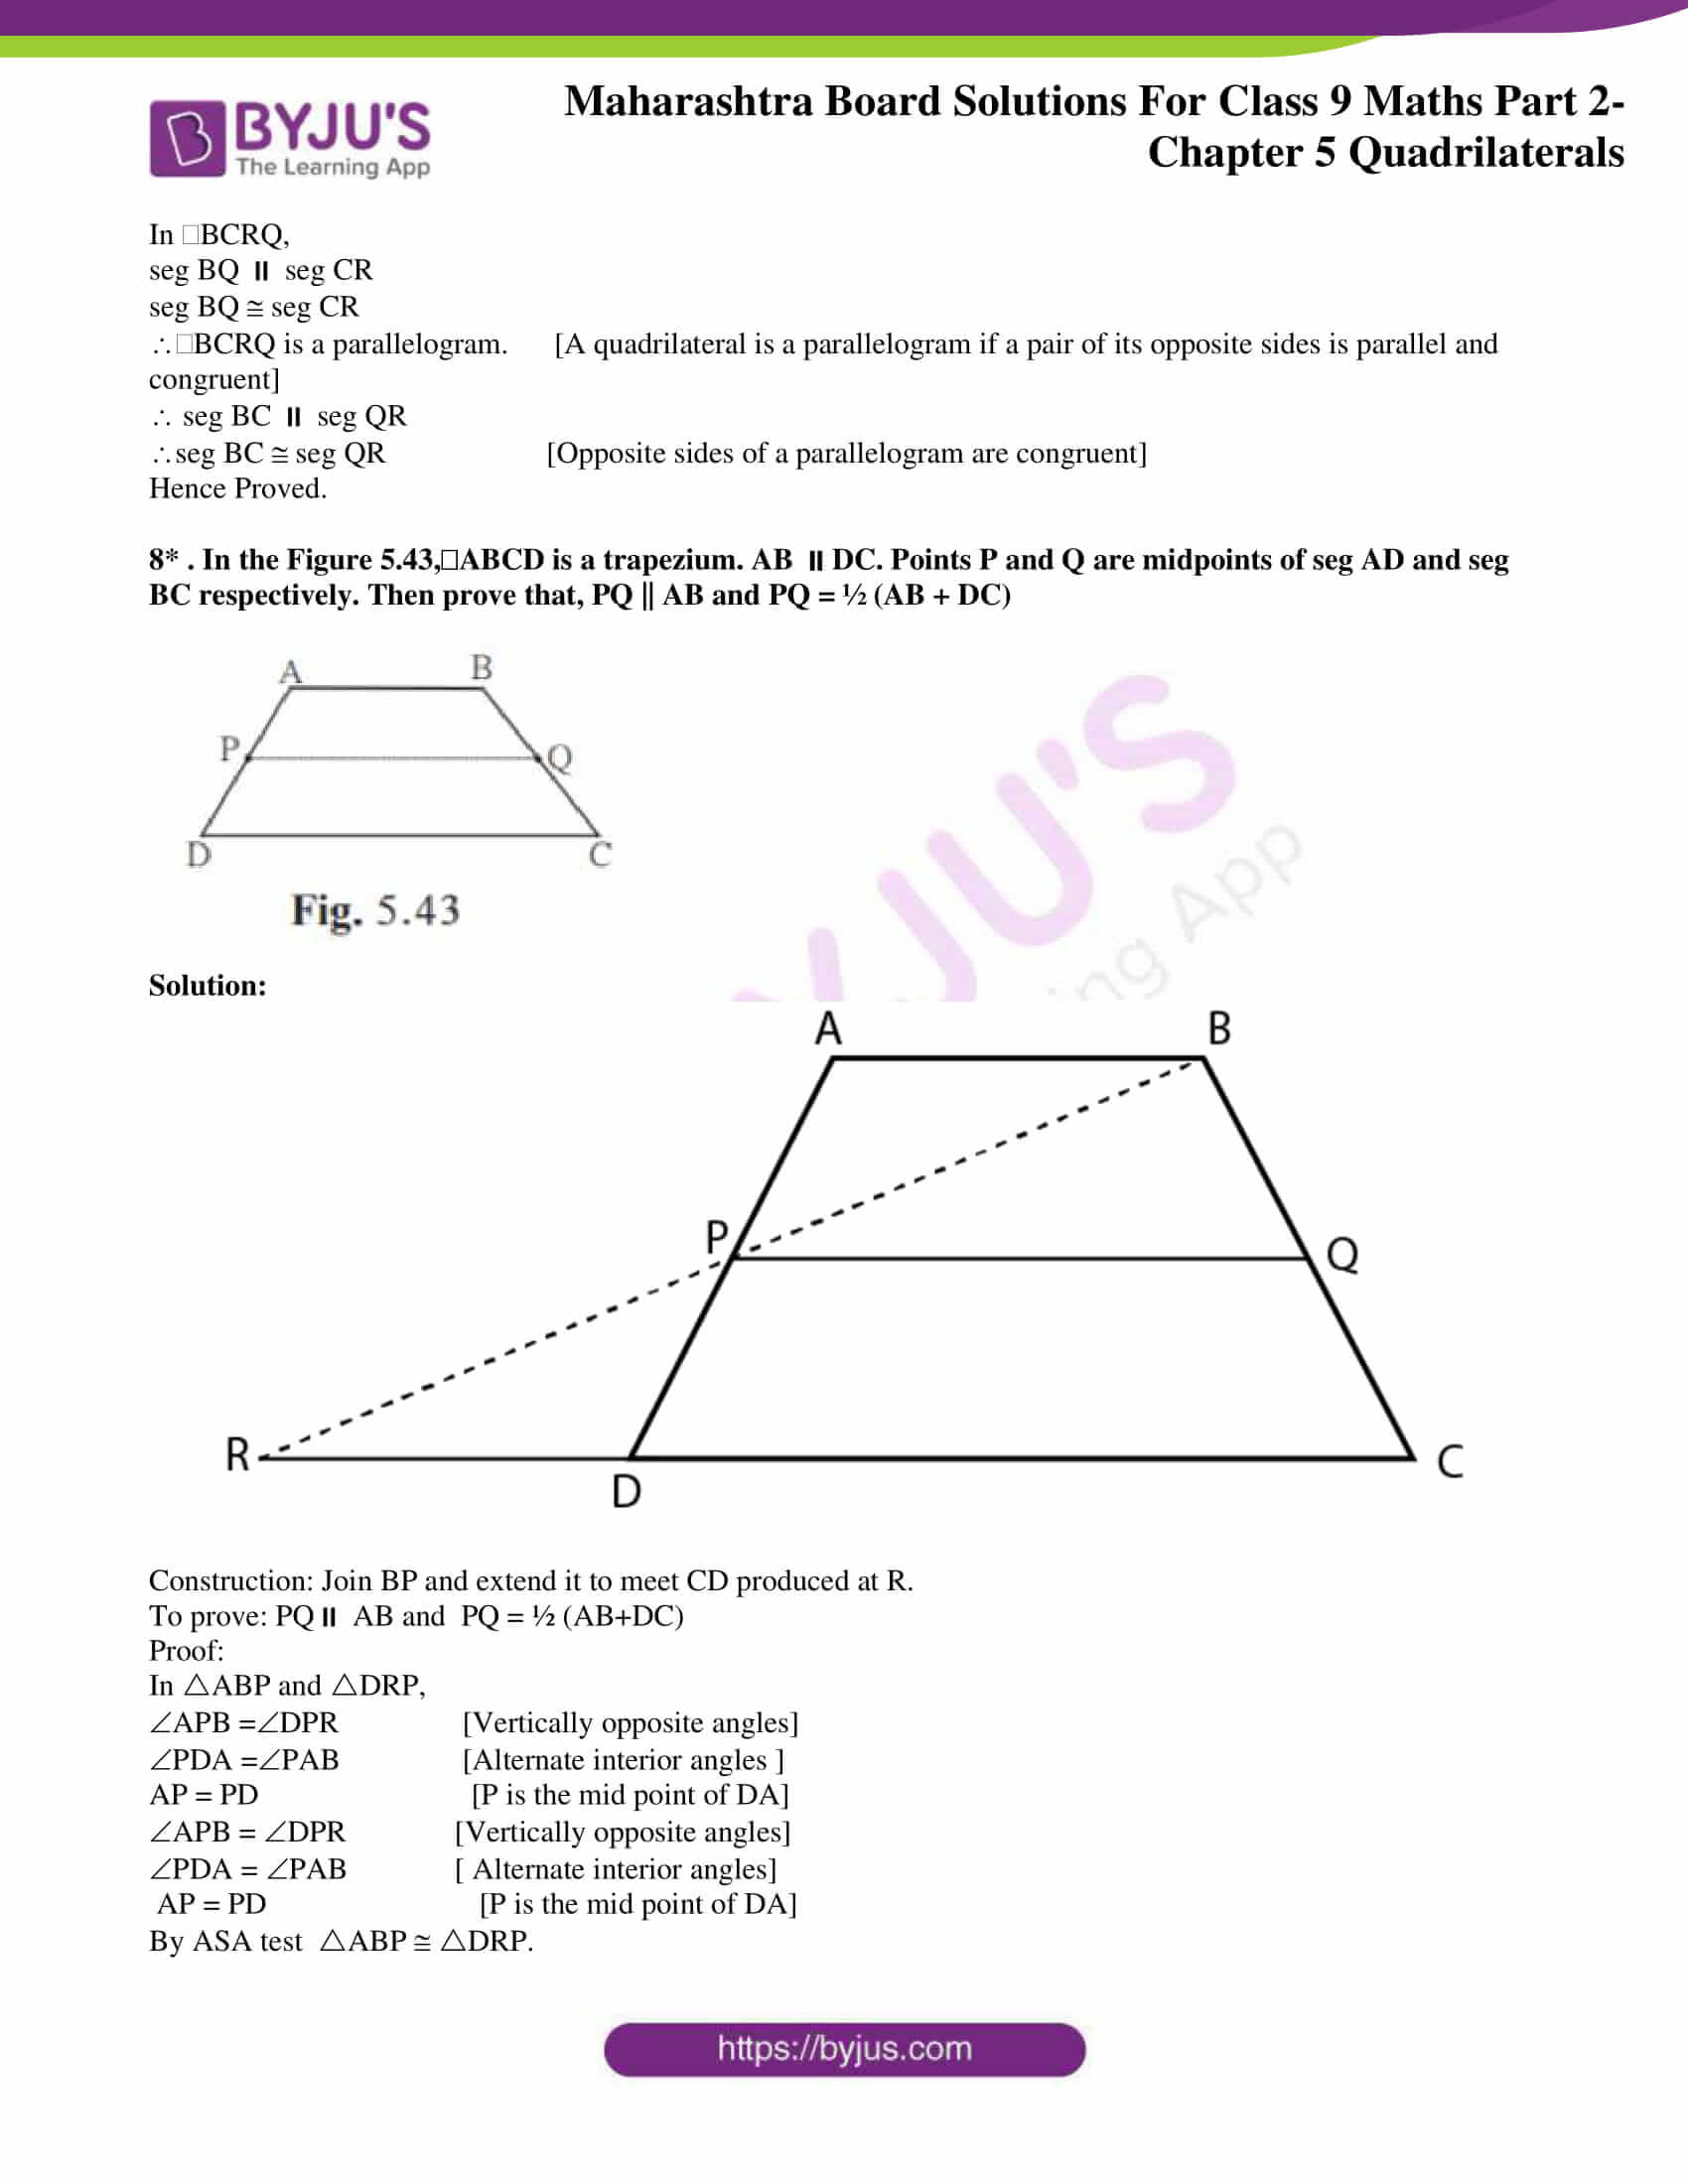 msbshse solutions for class 9 maths part 2 chapter 5 25